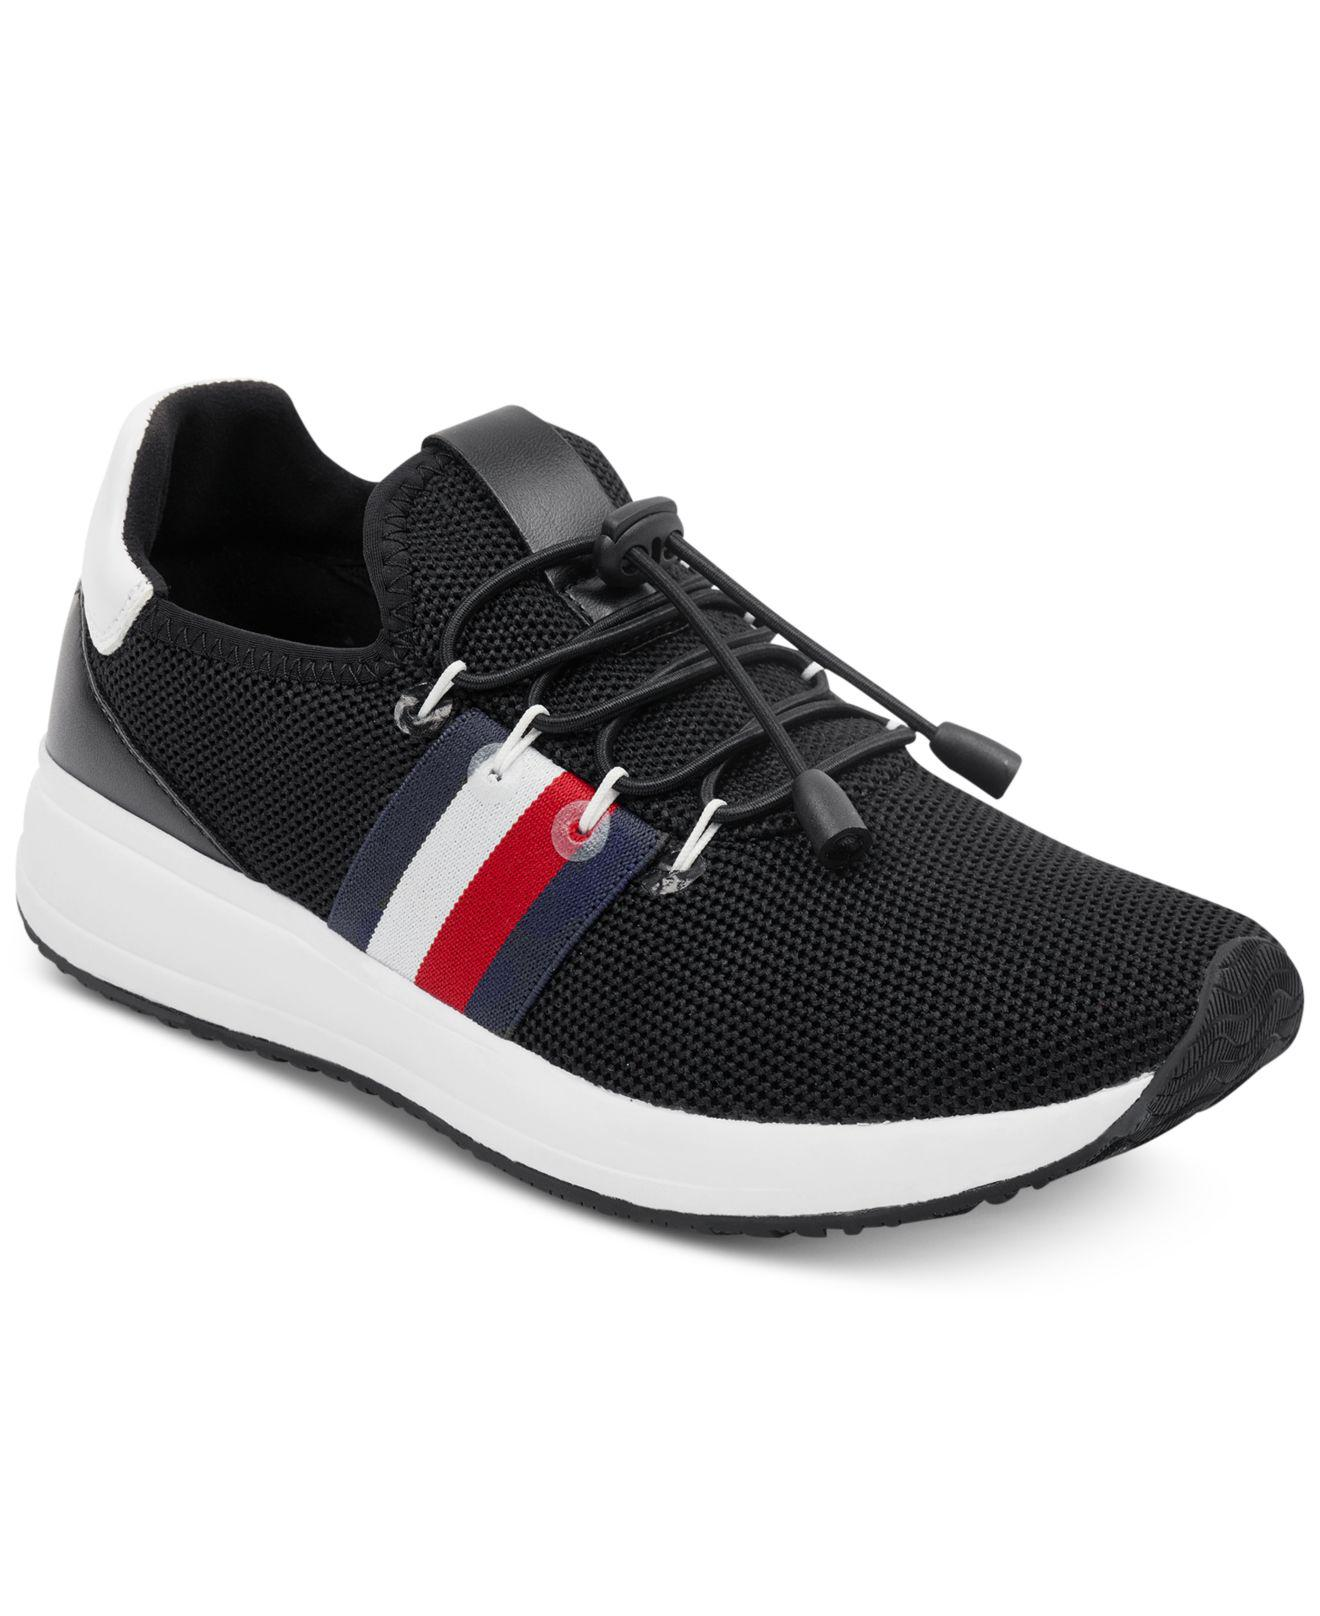 a0f51b7097d315 Lyst - Tommy Hilfiger Rhena Sneakers in Black